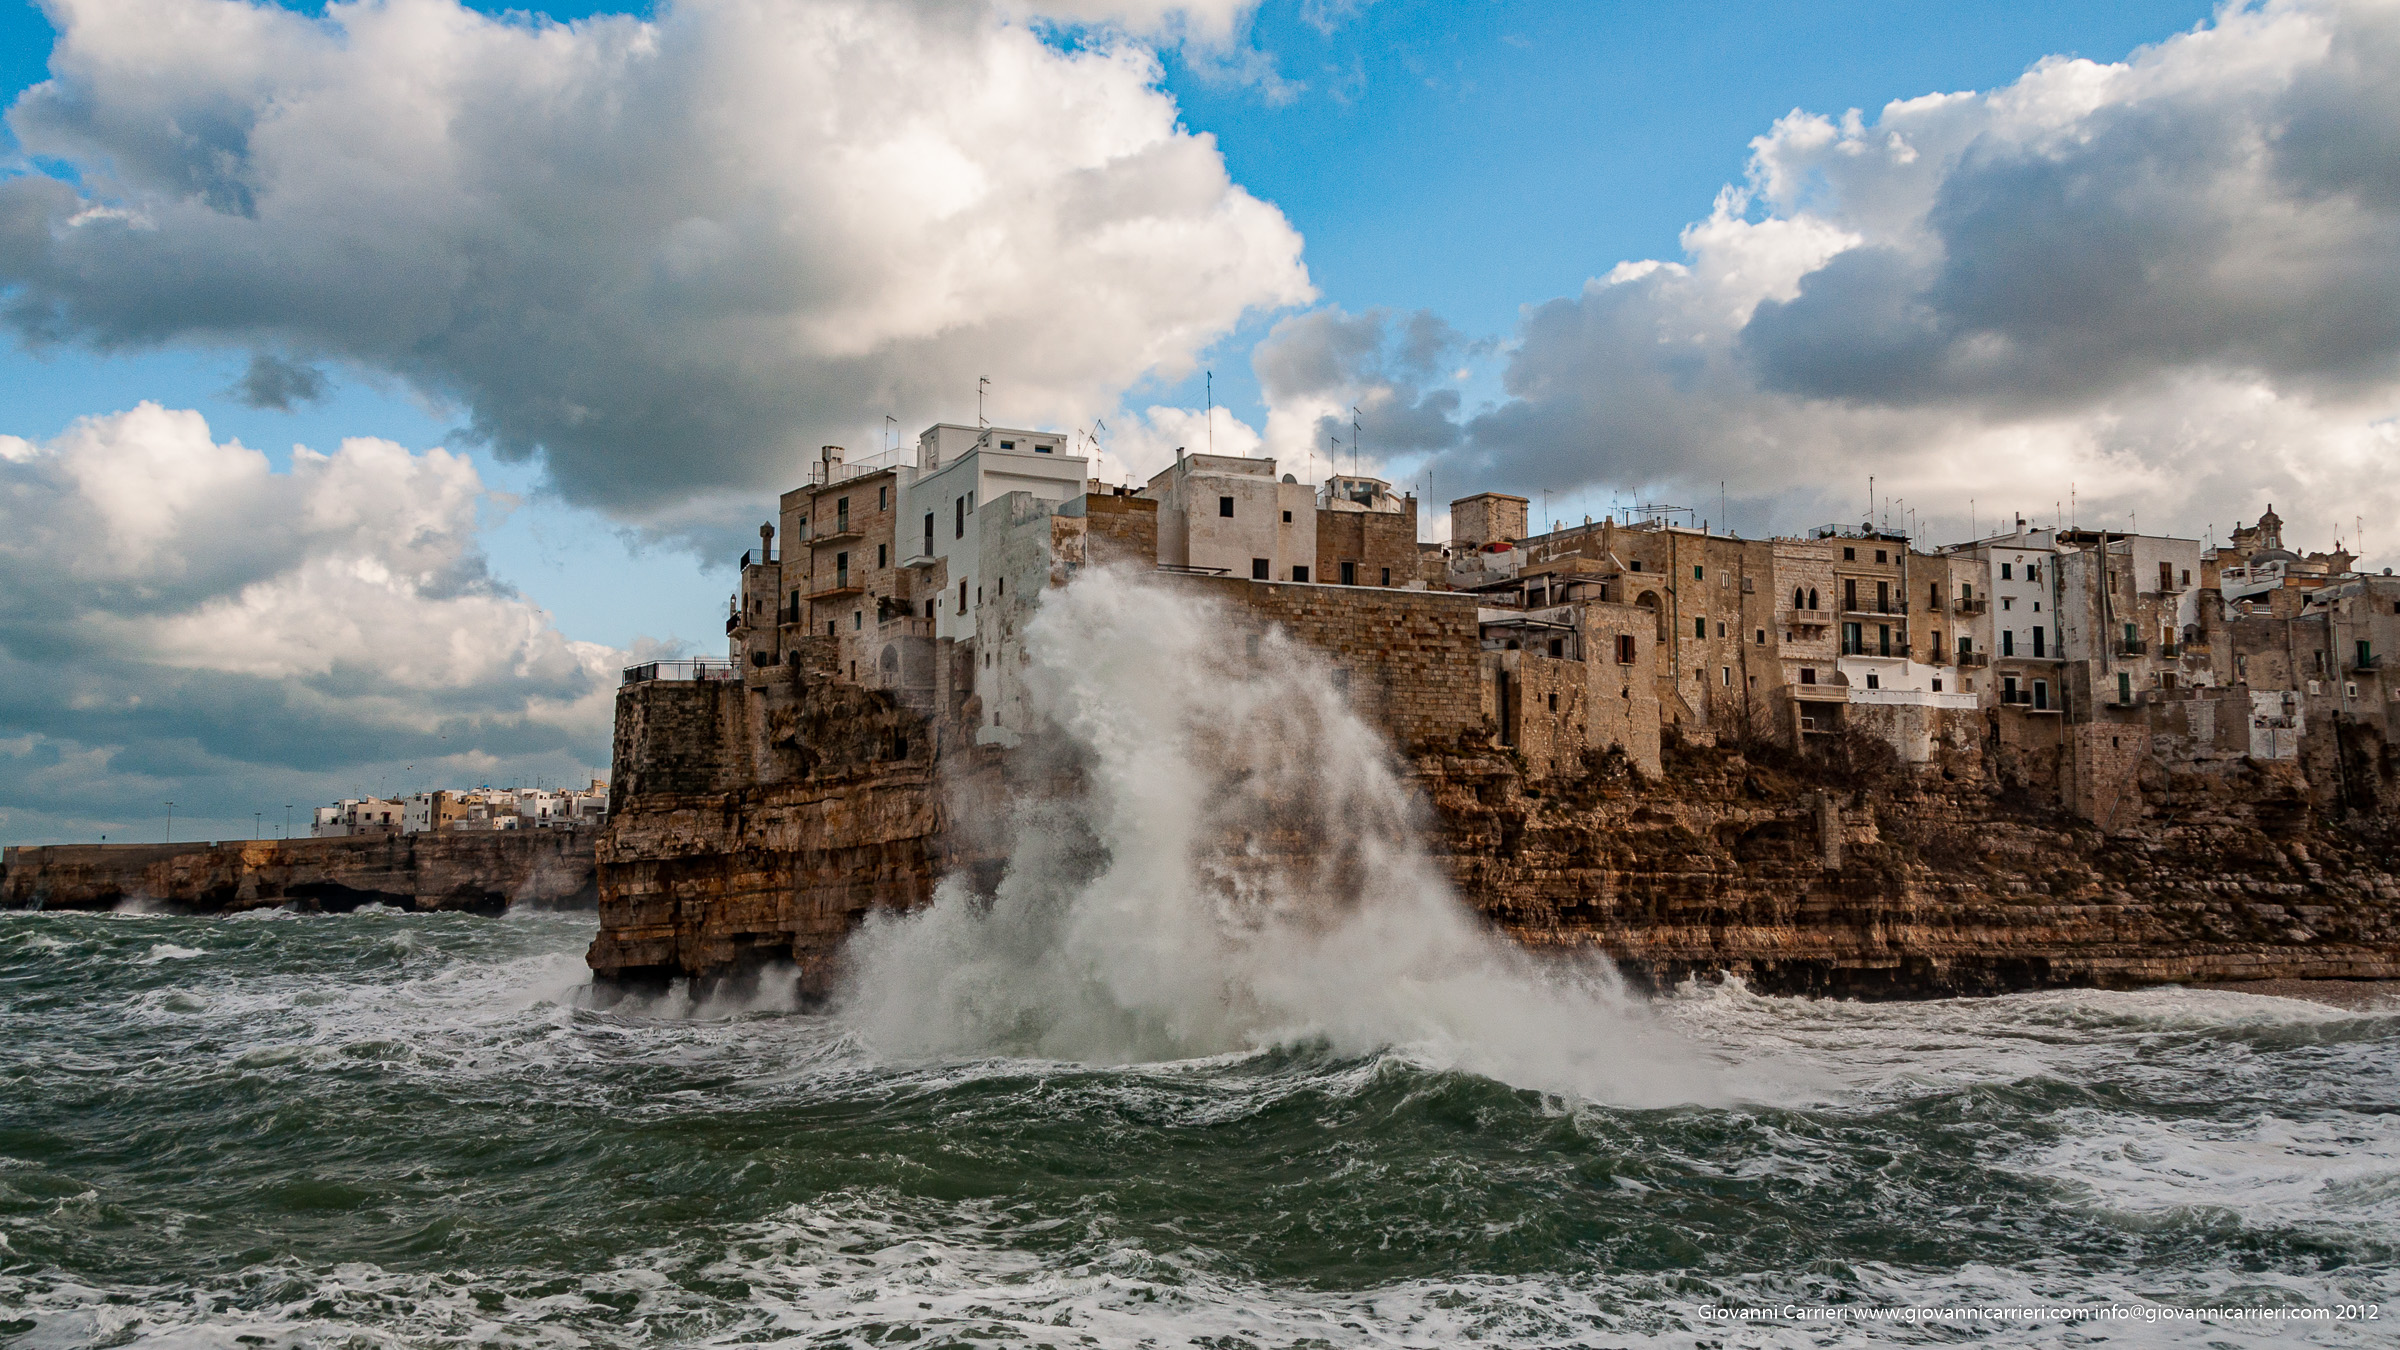 Storm on Polignano a Mare